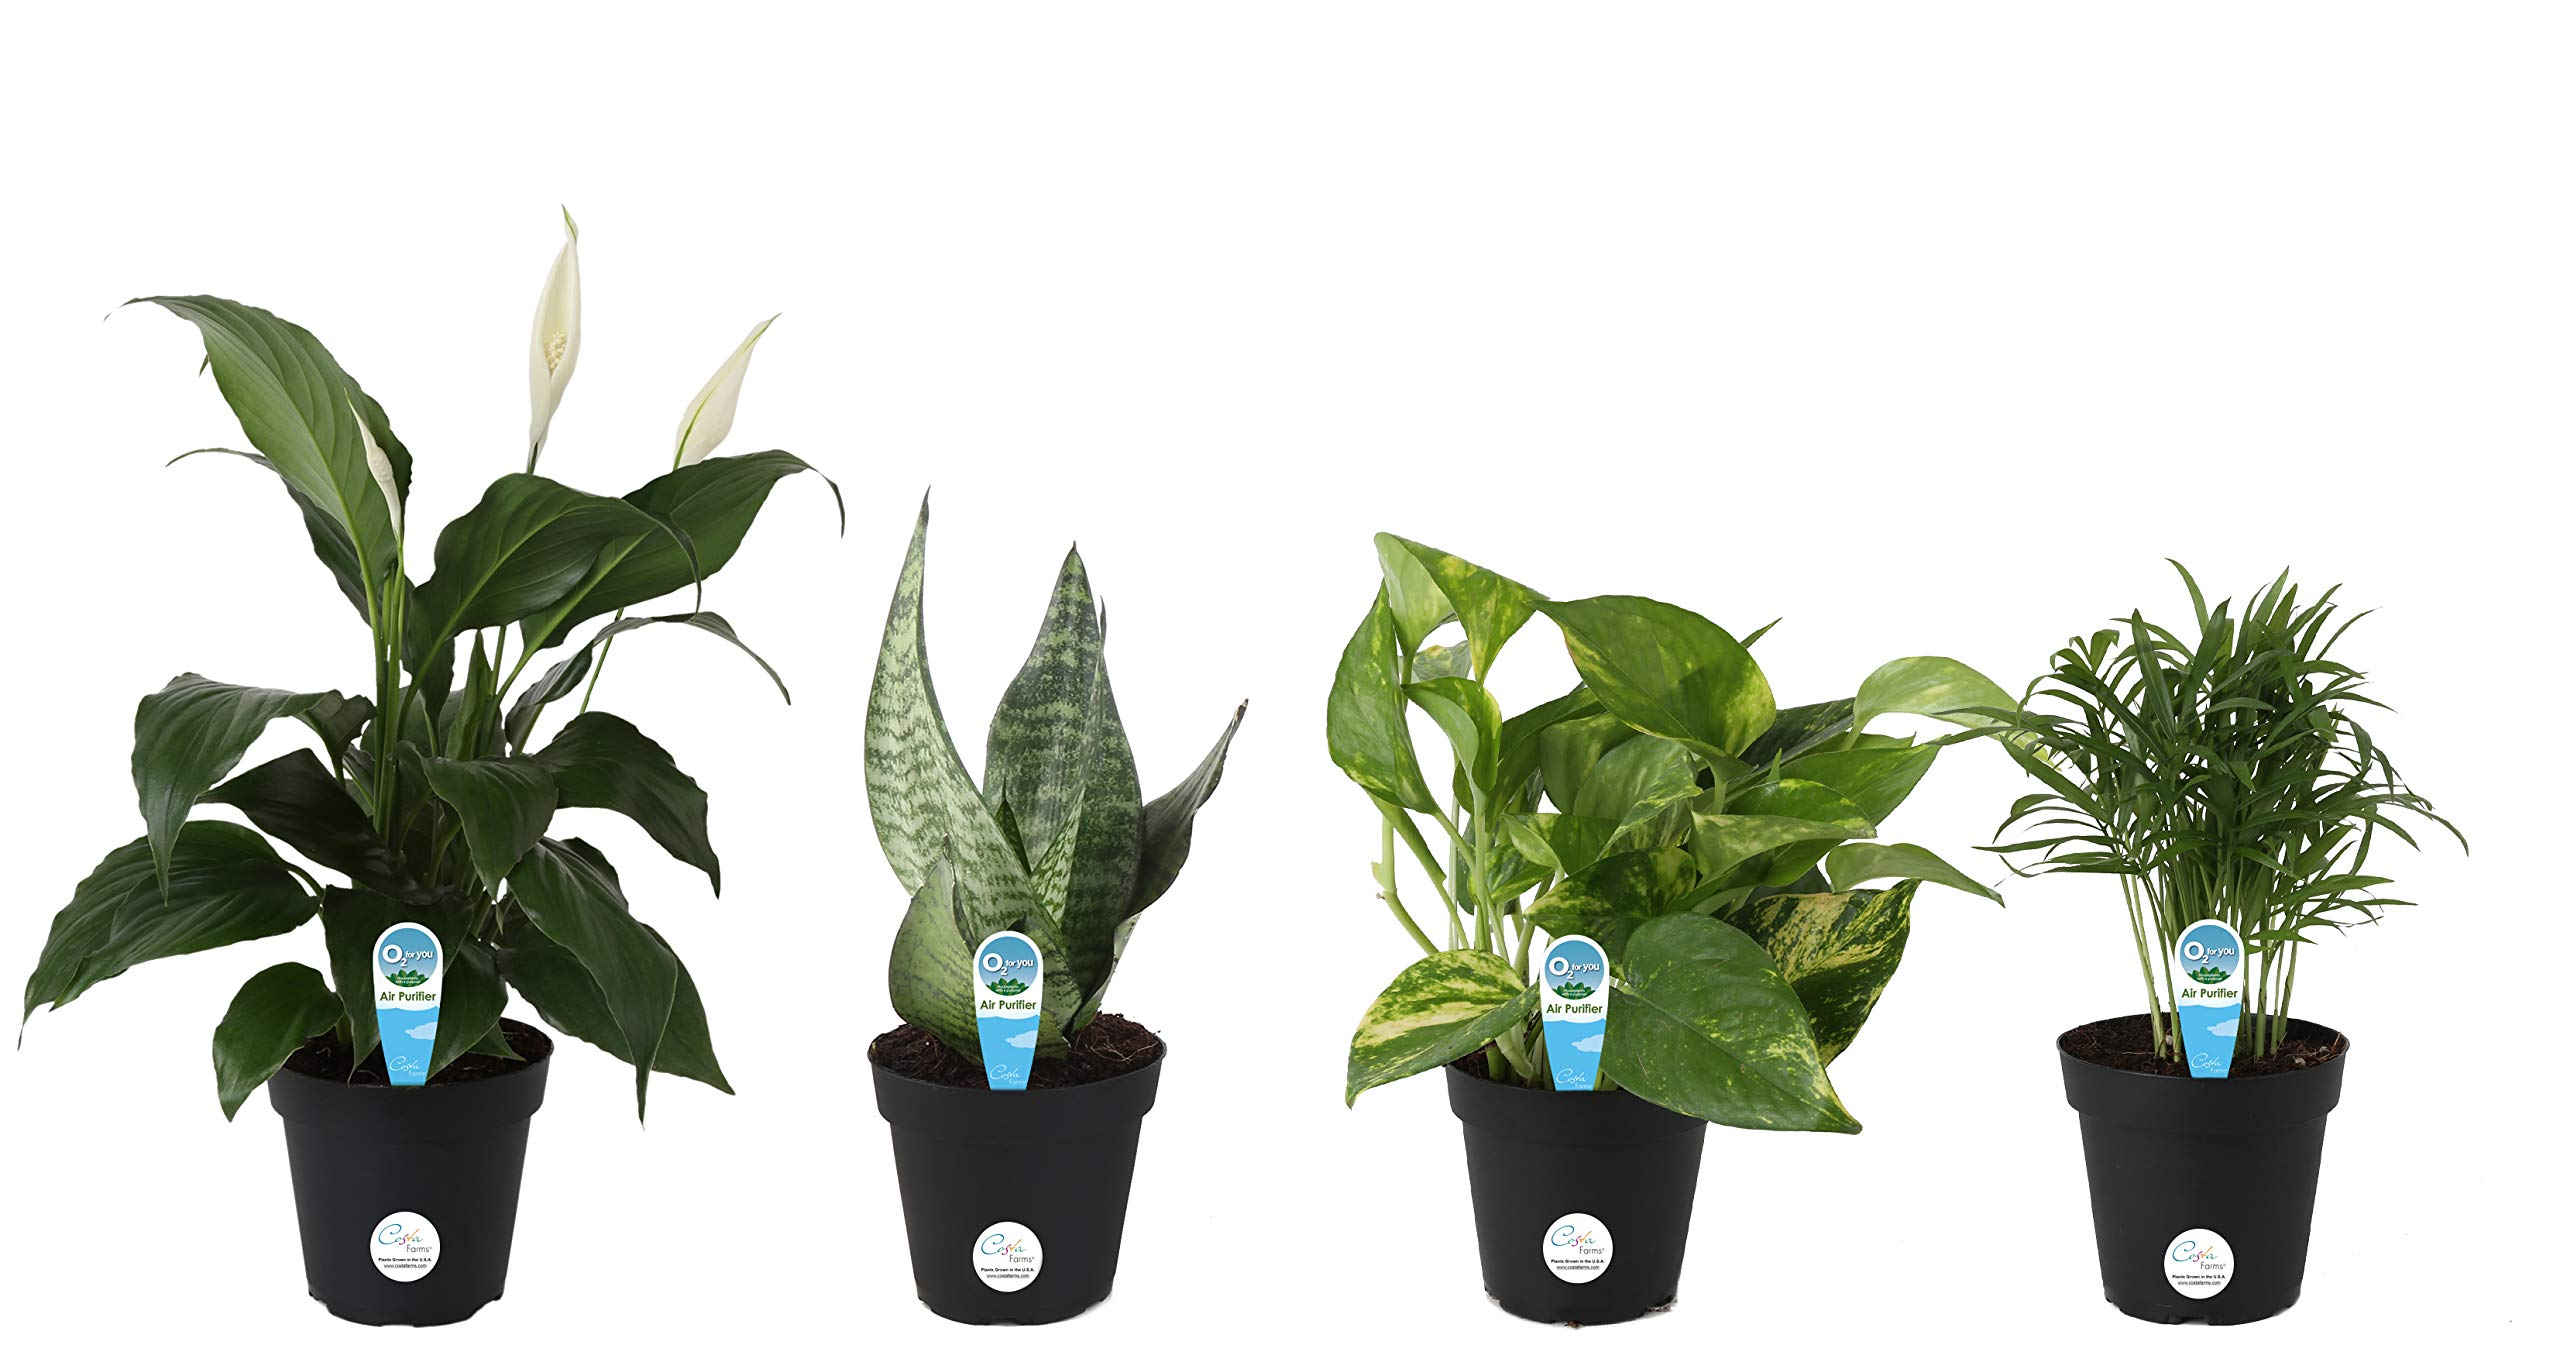 Costa Farms Clean Air - O2 for You Live House Plant Collection, 4-Pack, Includes Peace Lily, Snake Plant, Parlor Palm, Devil's Ivy, 4-Inch Grower Pot